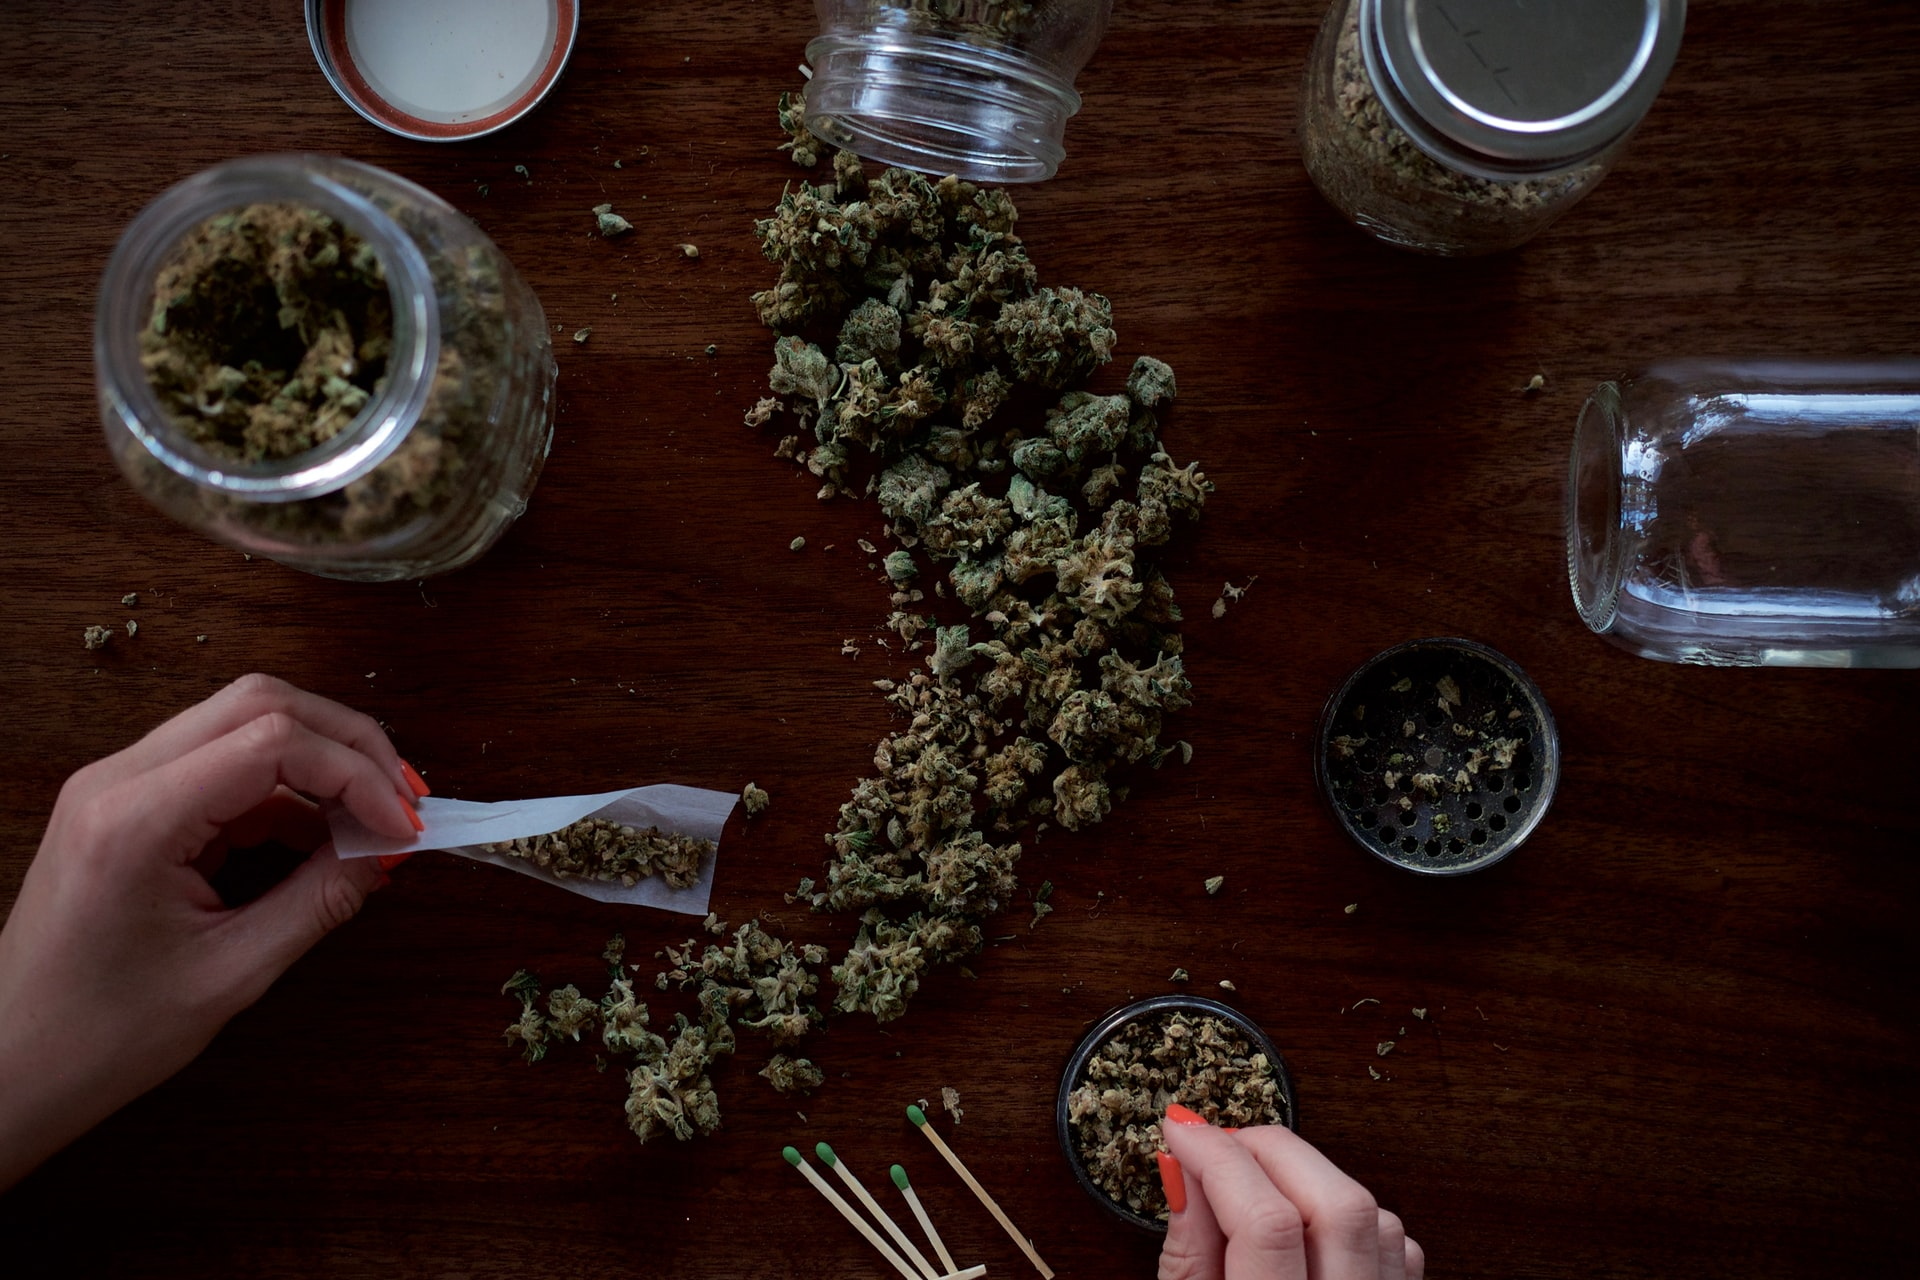 making a joint on wooden table